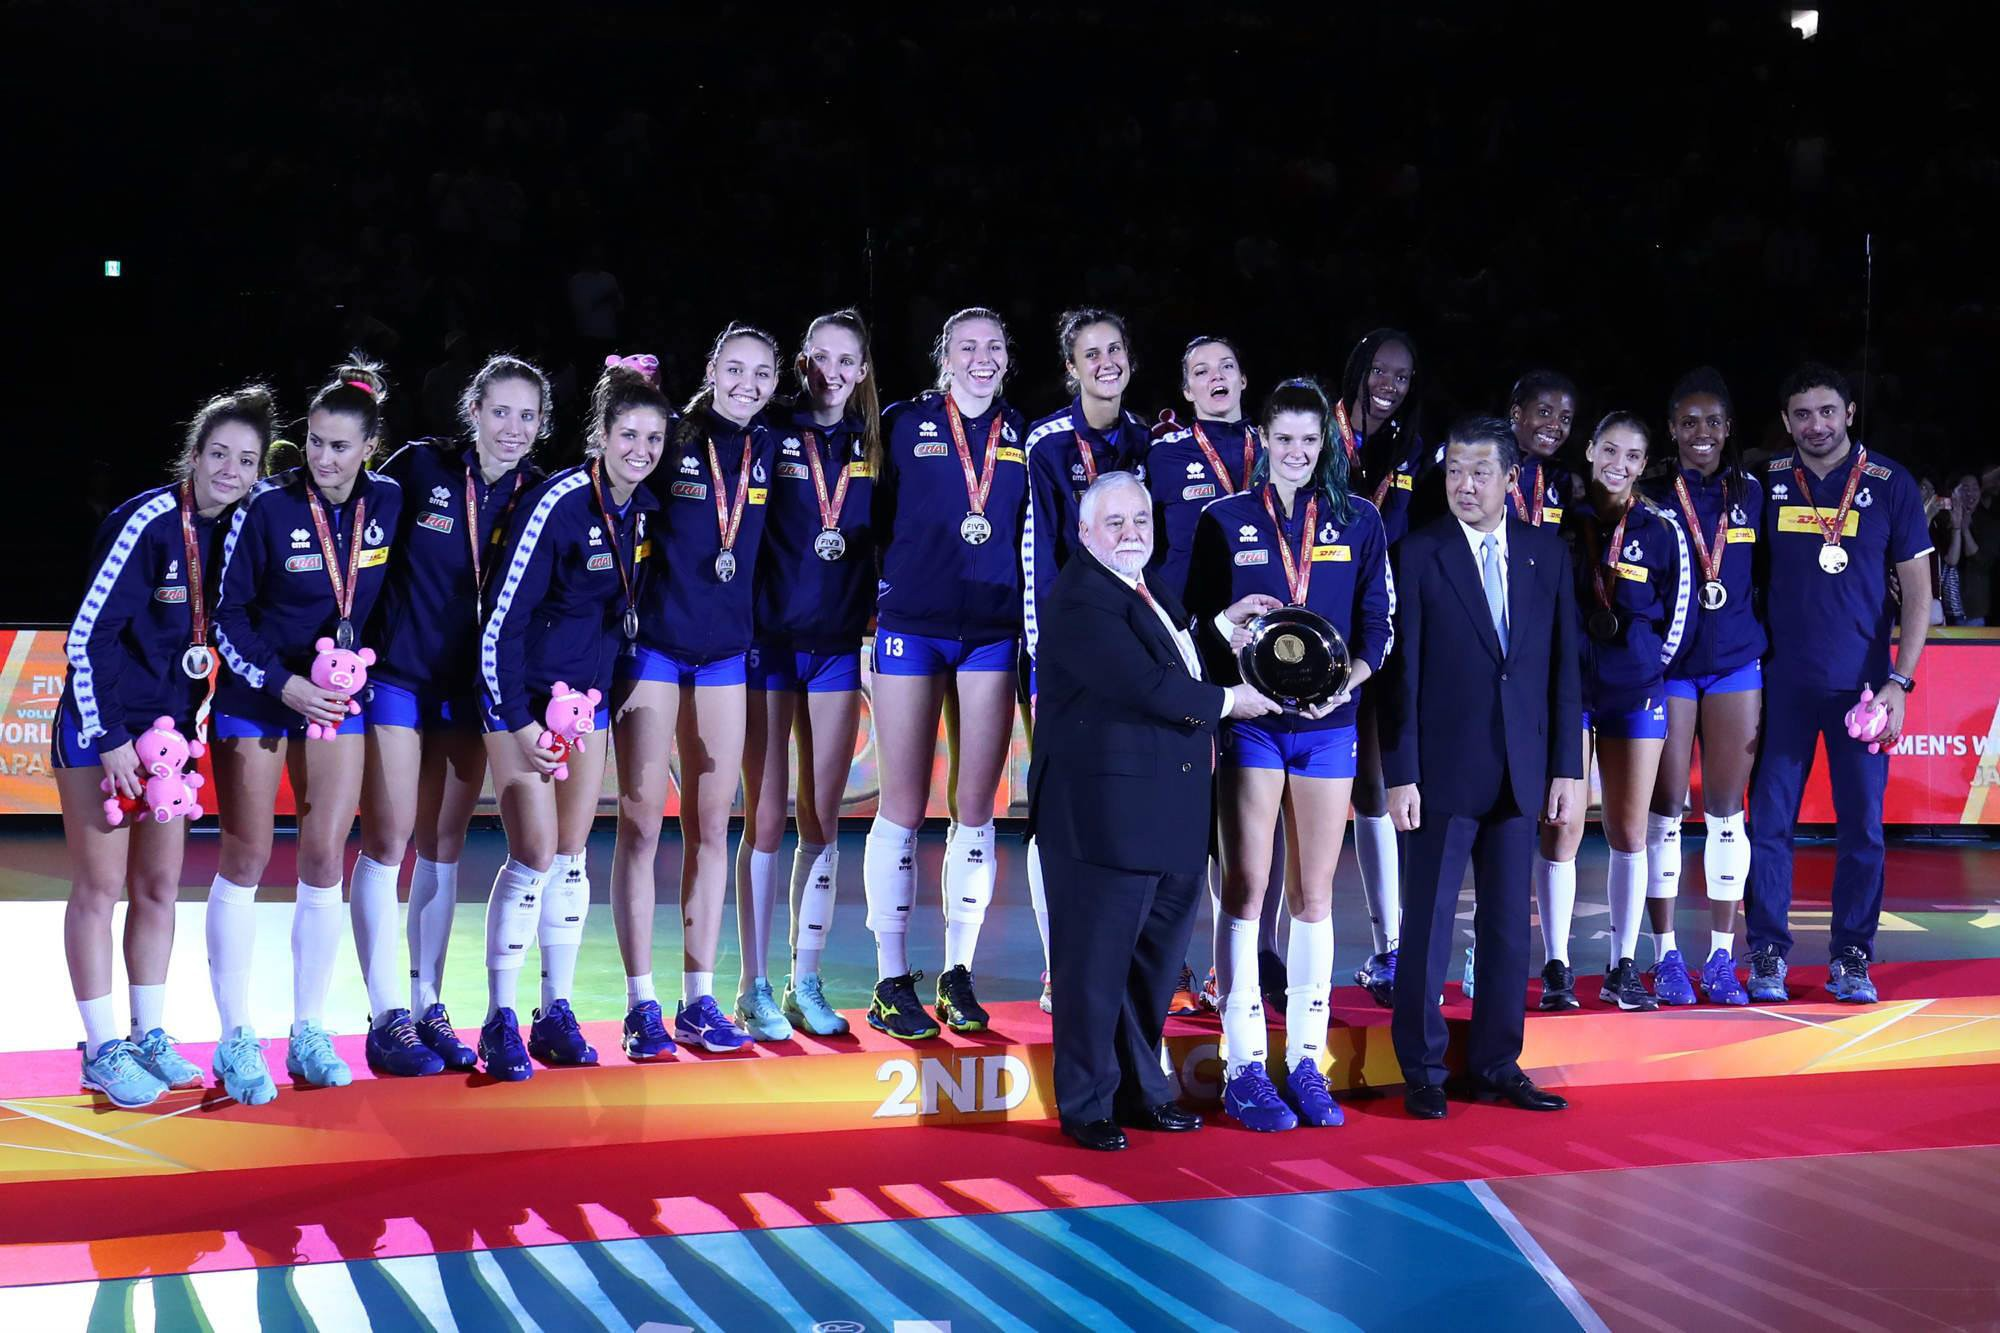 2018 Volleyball Women's World Championship: a silver medal for Italy!!!